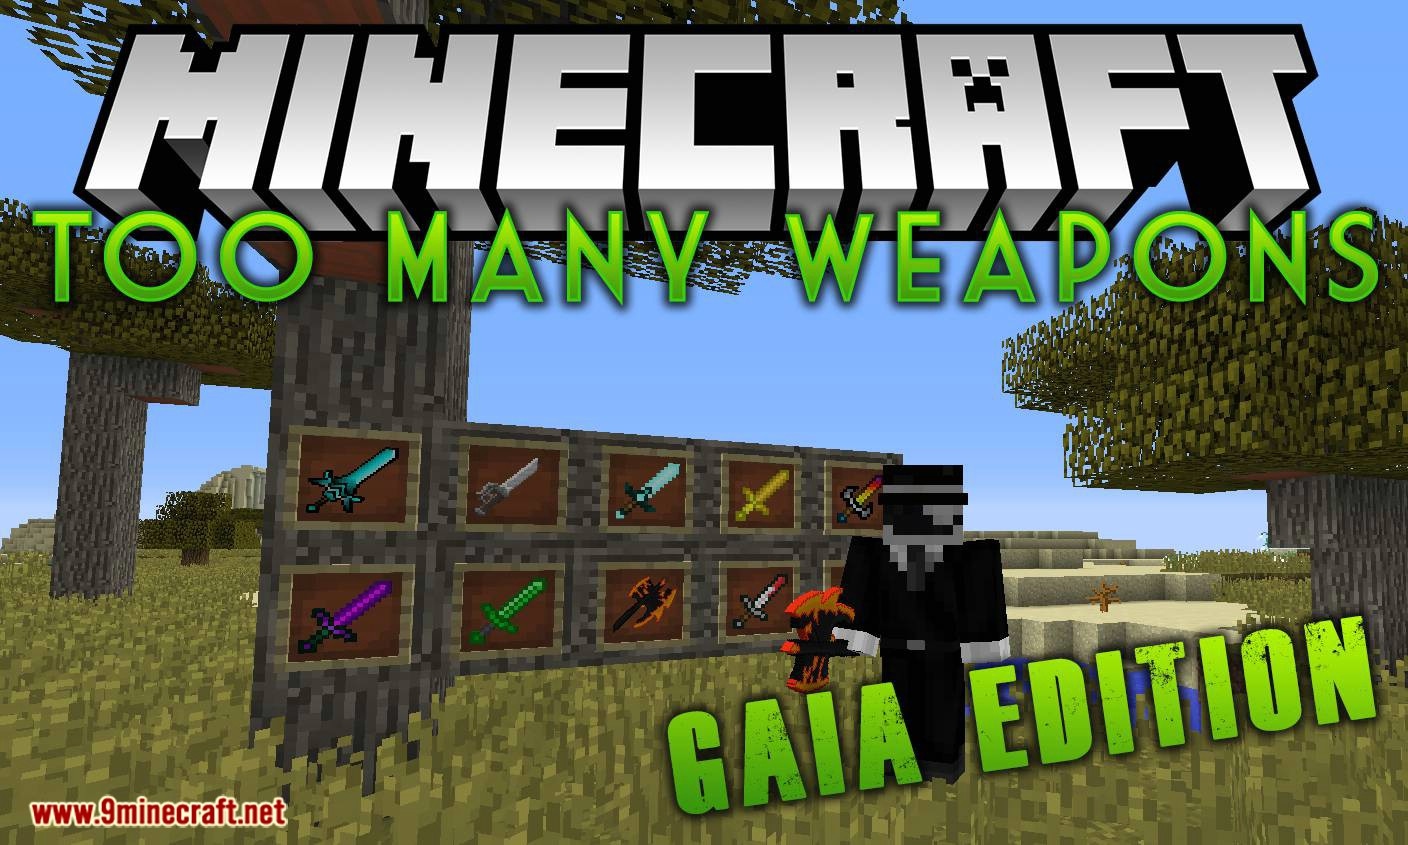 Too Many Weapons Gaia Edition mod for minecraft logo